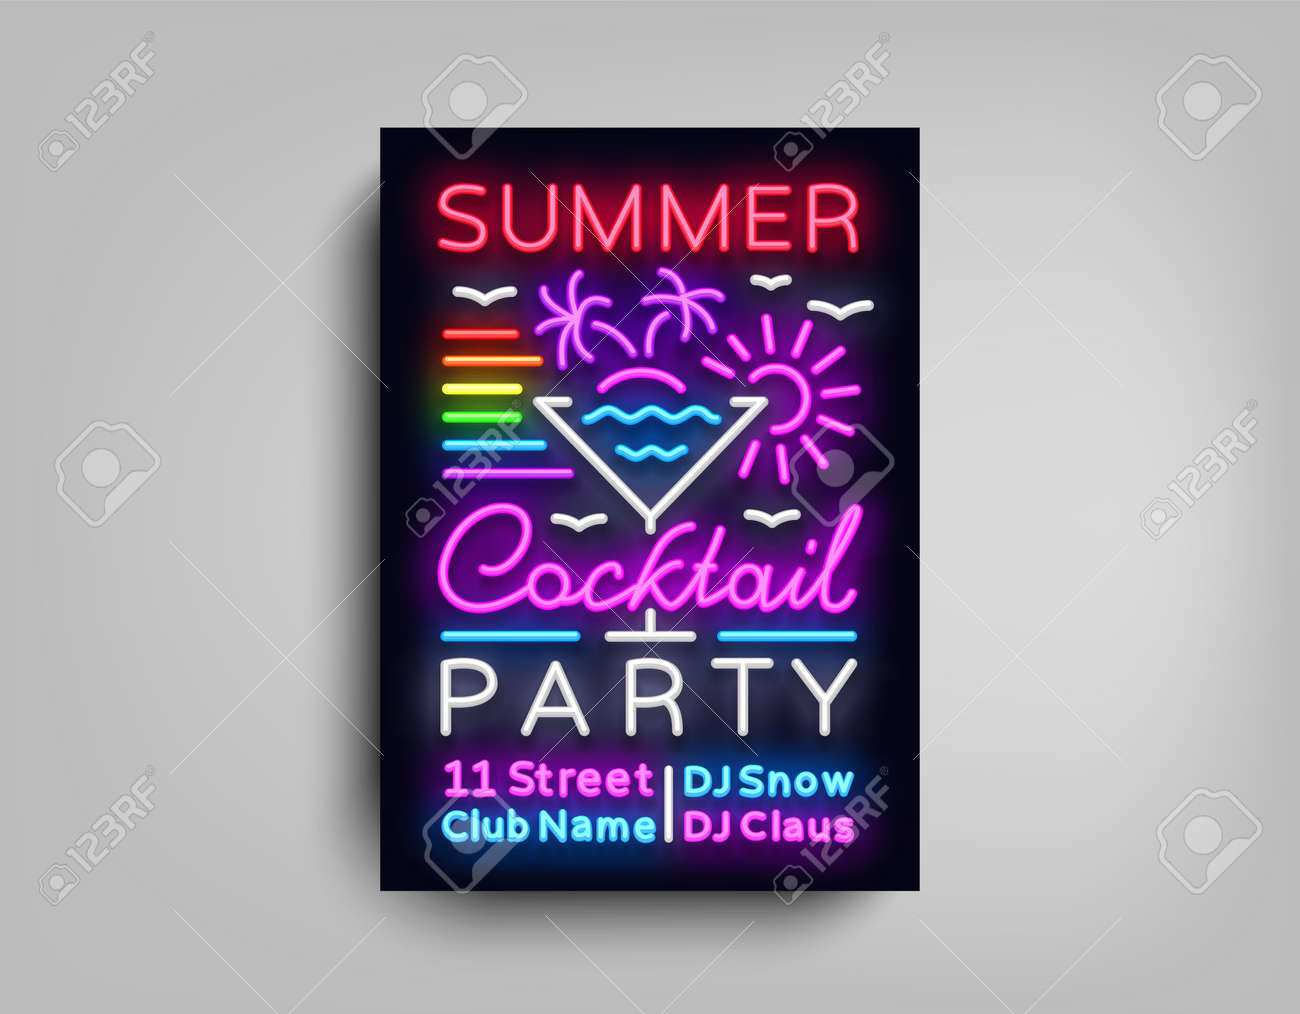 Cocktail Party poster neon  Flyer template design in neon style